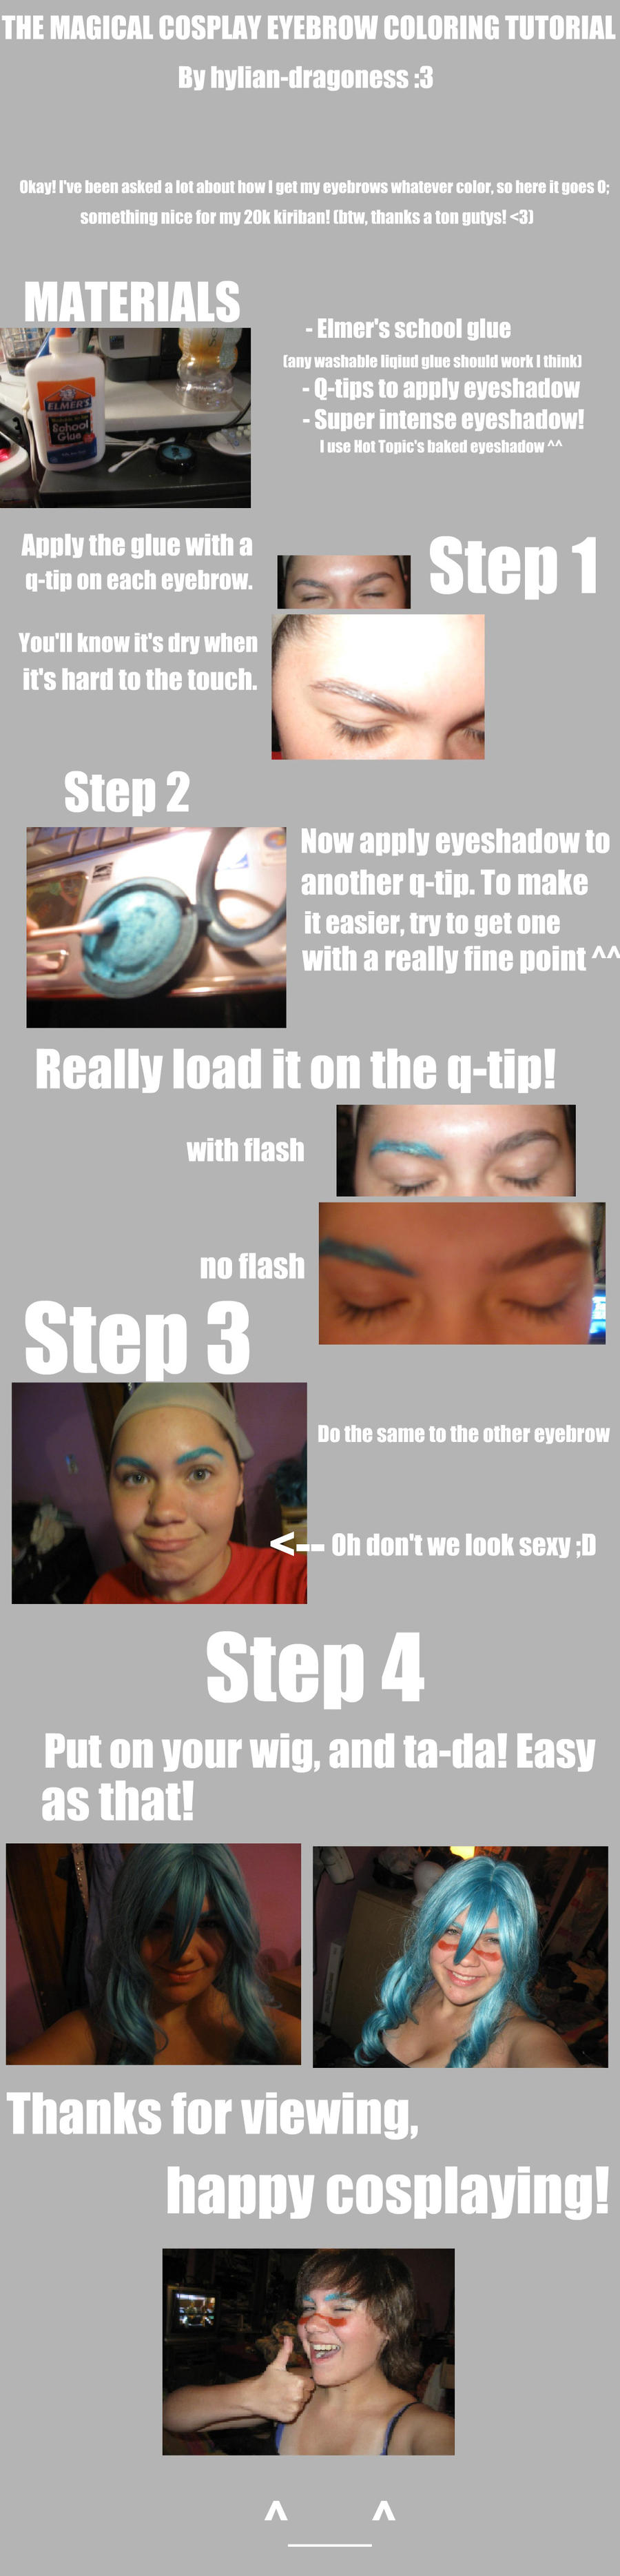 Eyebrow coloring tutorial by hylian-dragoness